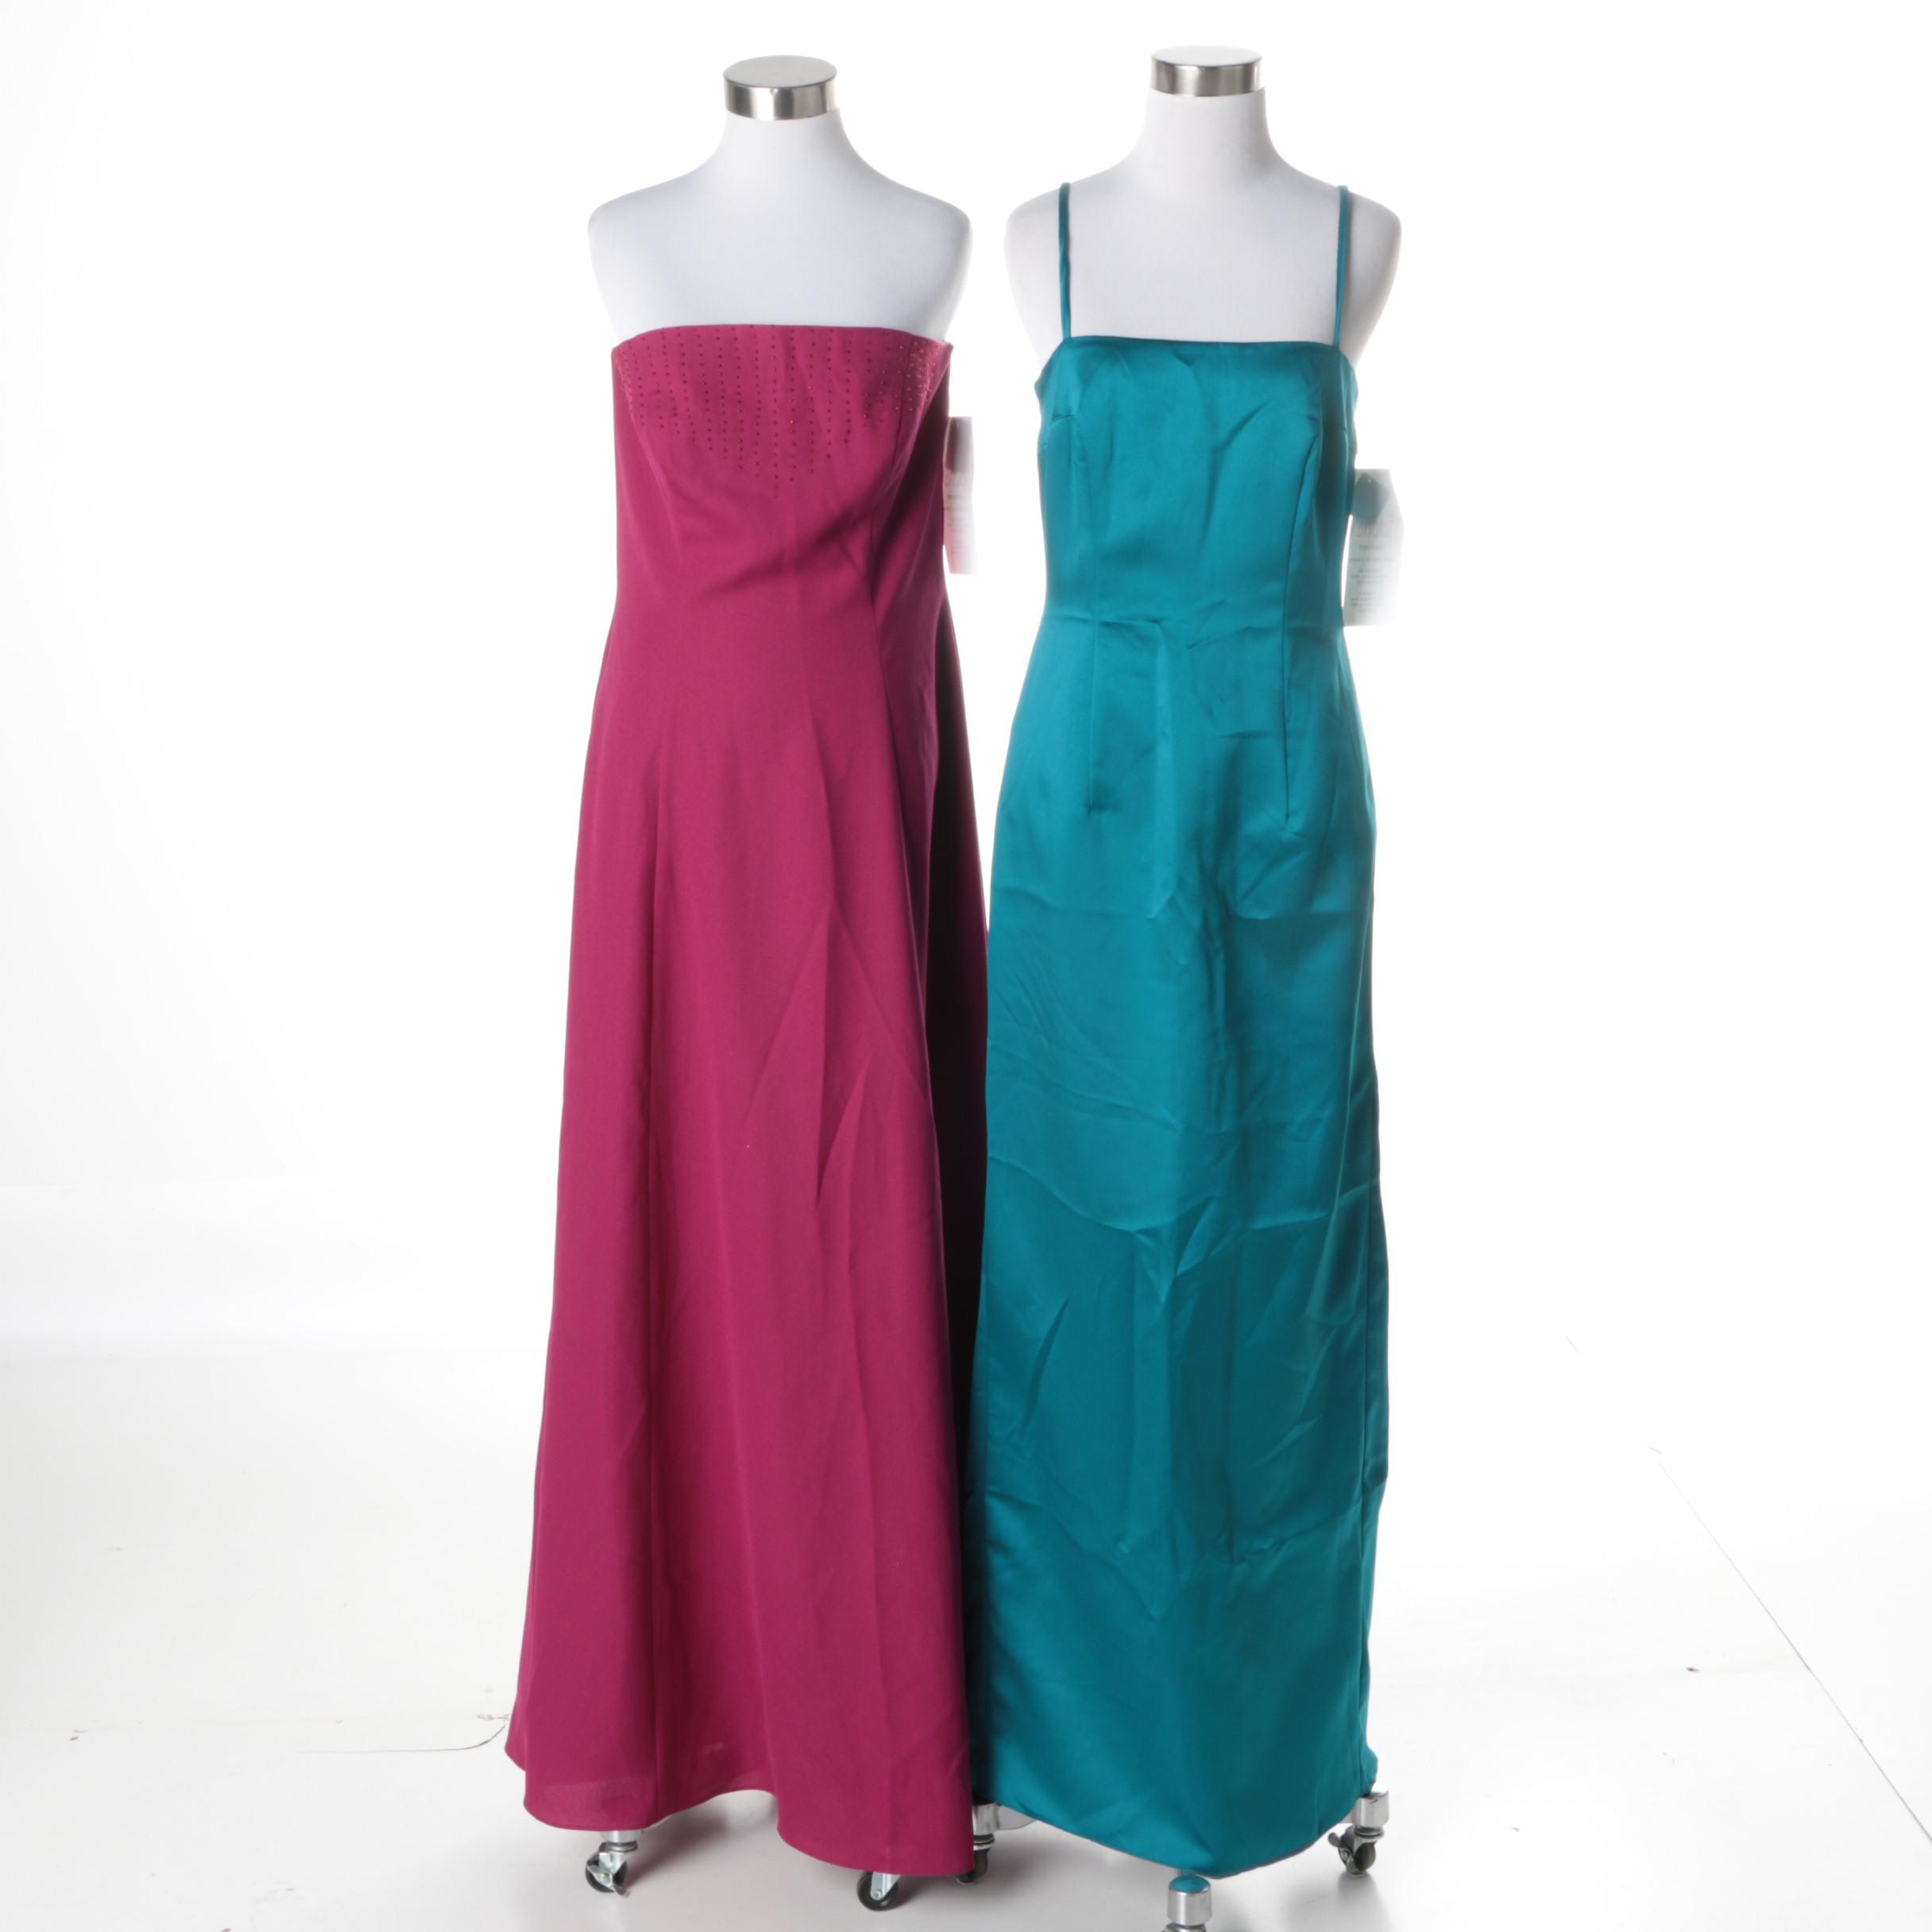 Women's Formal Floor-Length Dresses